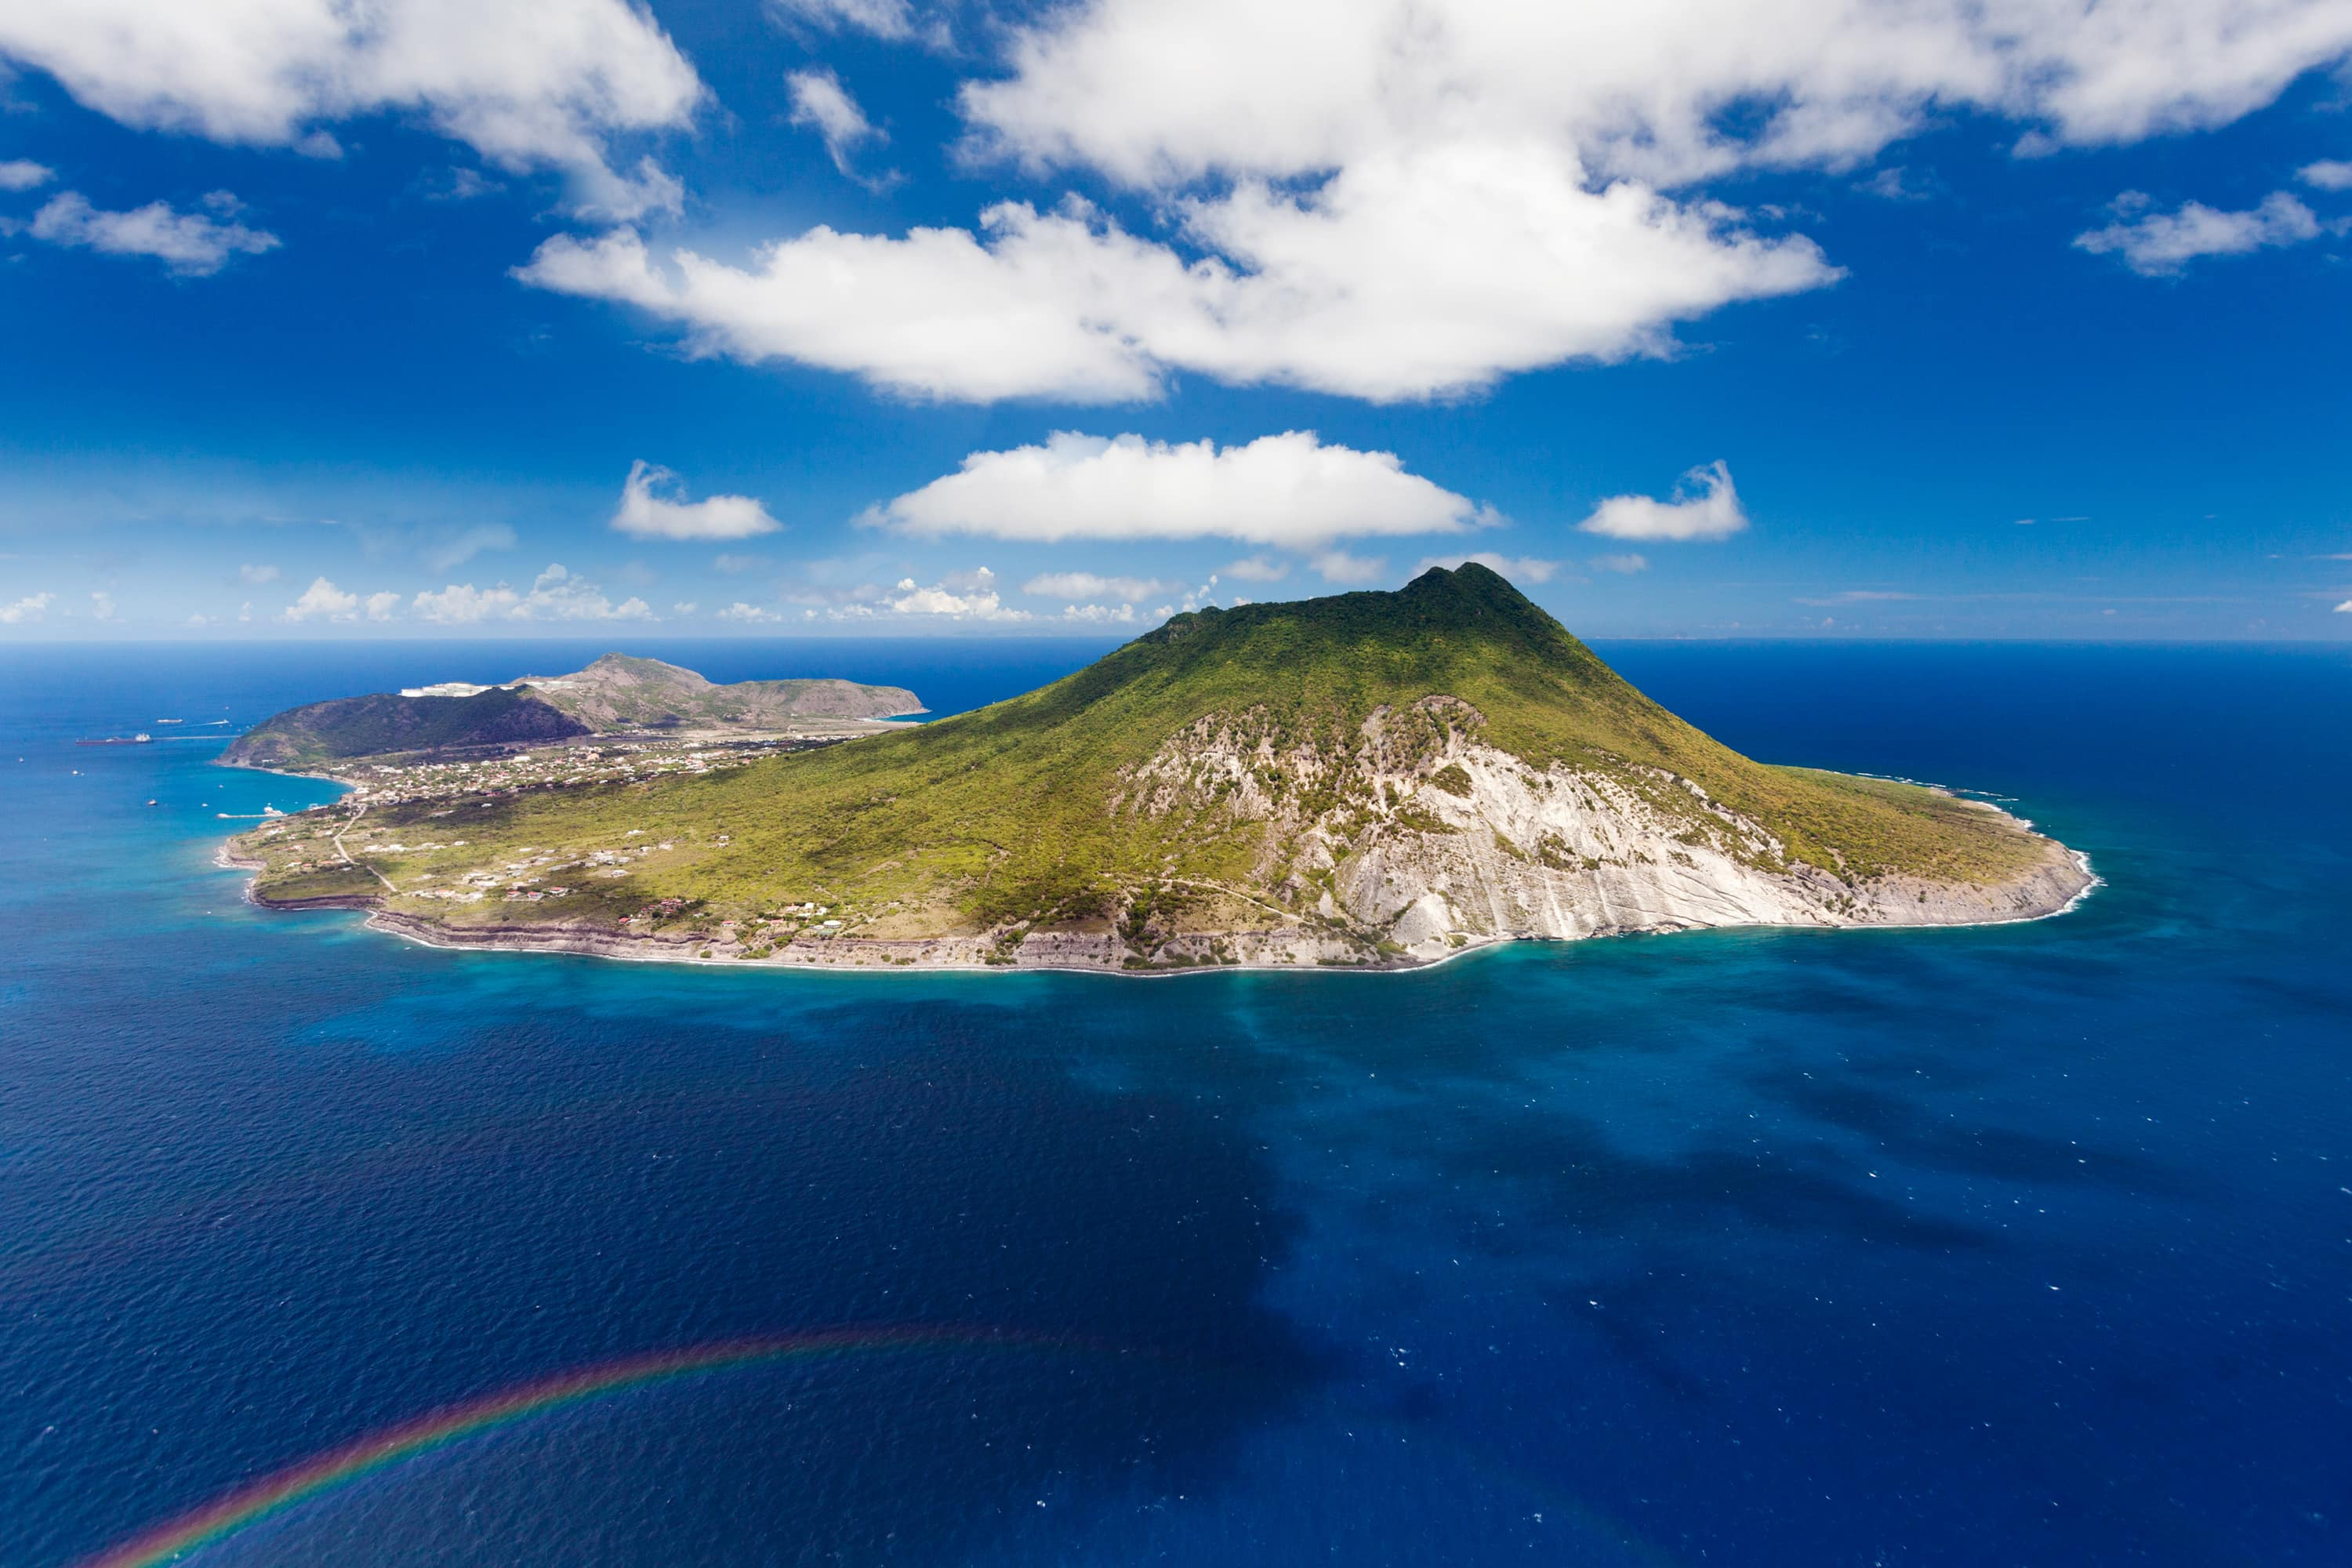 Statia from the sky | Credit: Cees Timmers